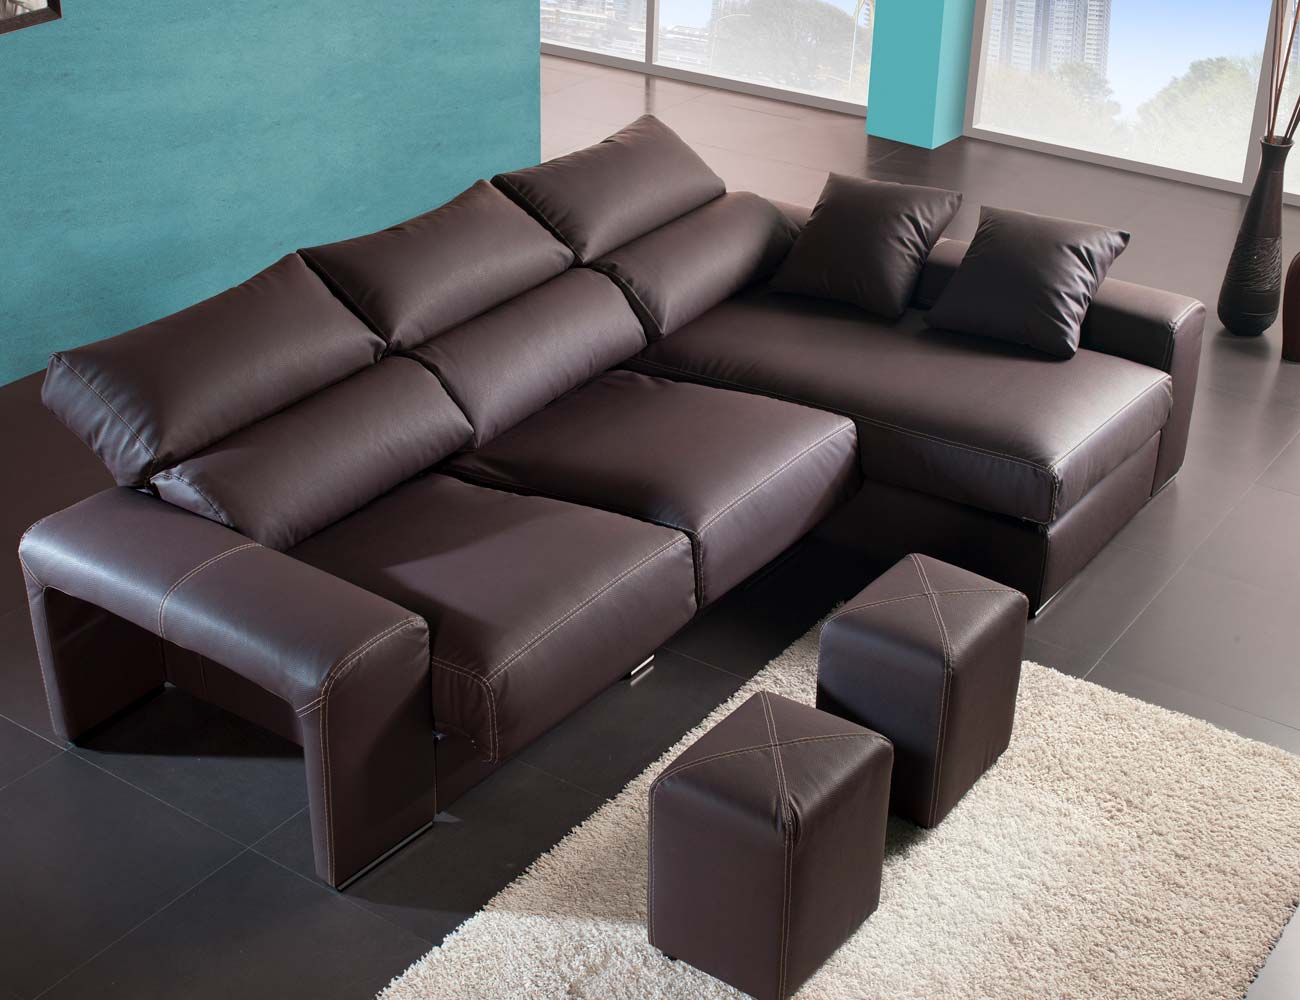 Sofa chaiselongue moderno polipiel chocolate poufs taburetes13